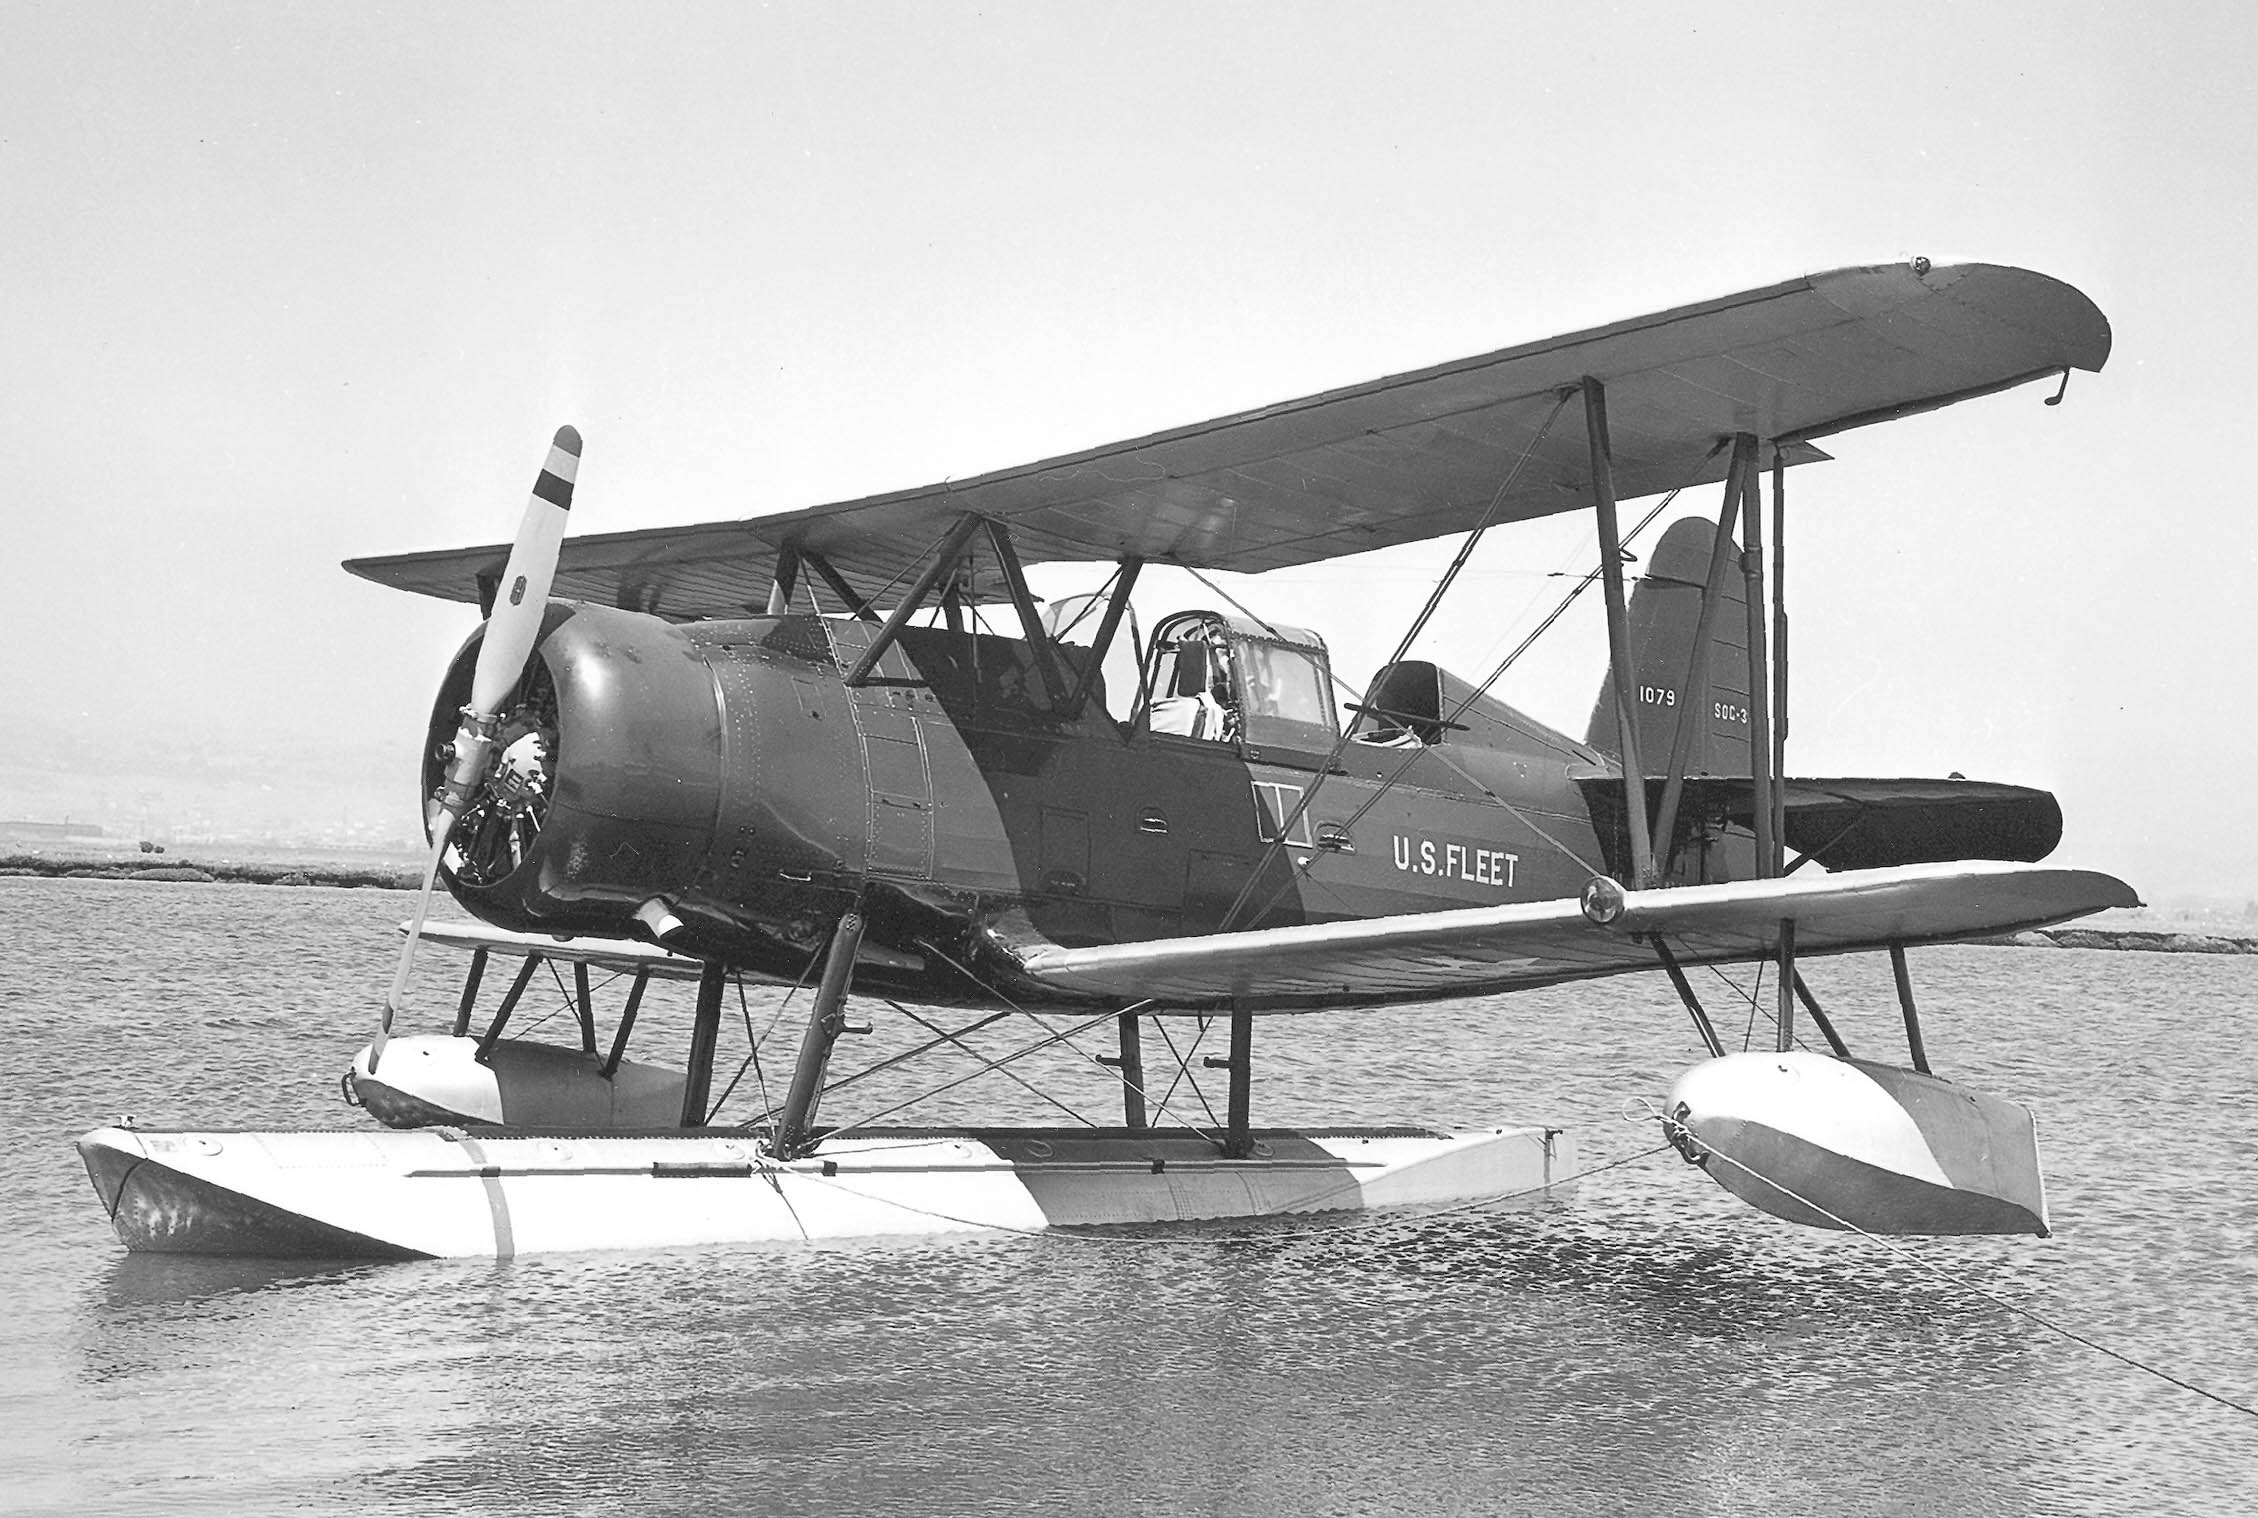 File:Curtiss SOC-3 (1079) CinCUS (5731174661).jpg